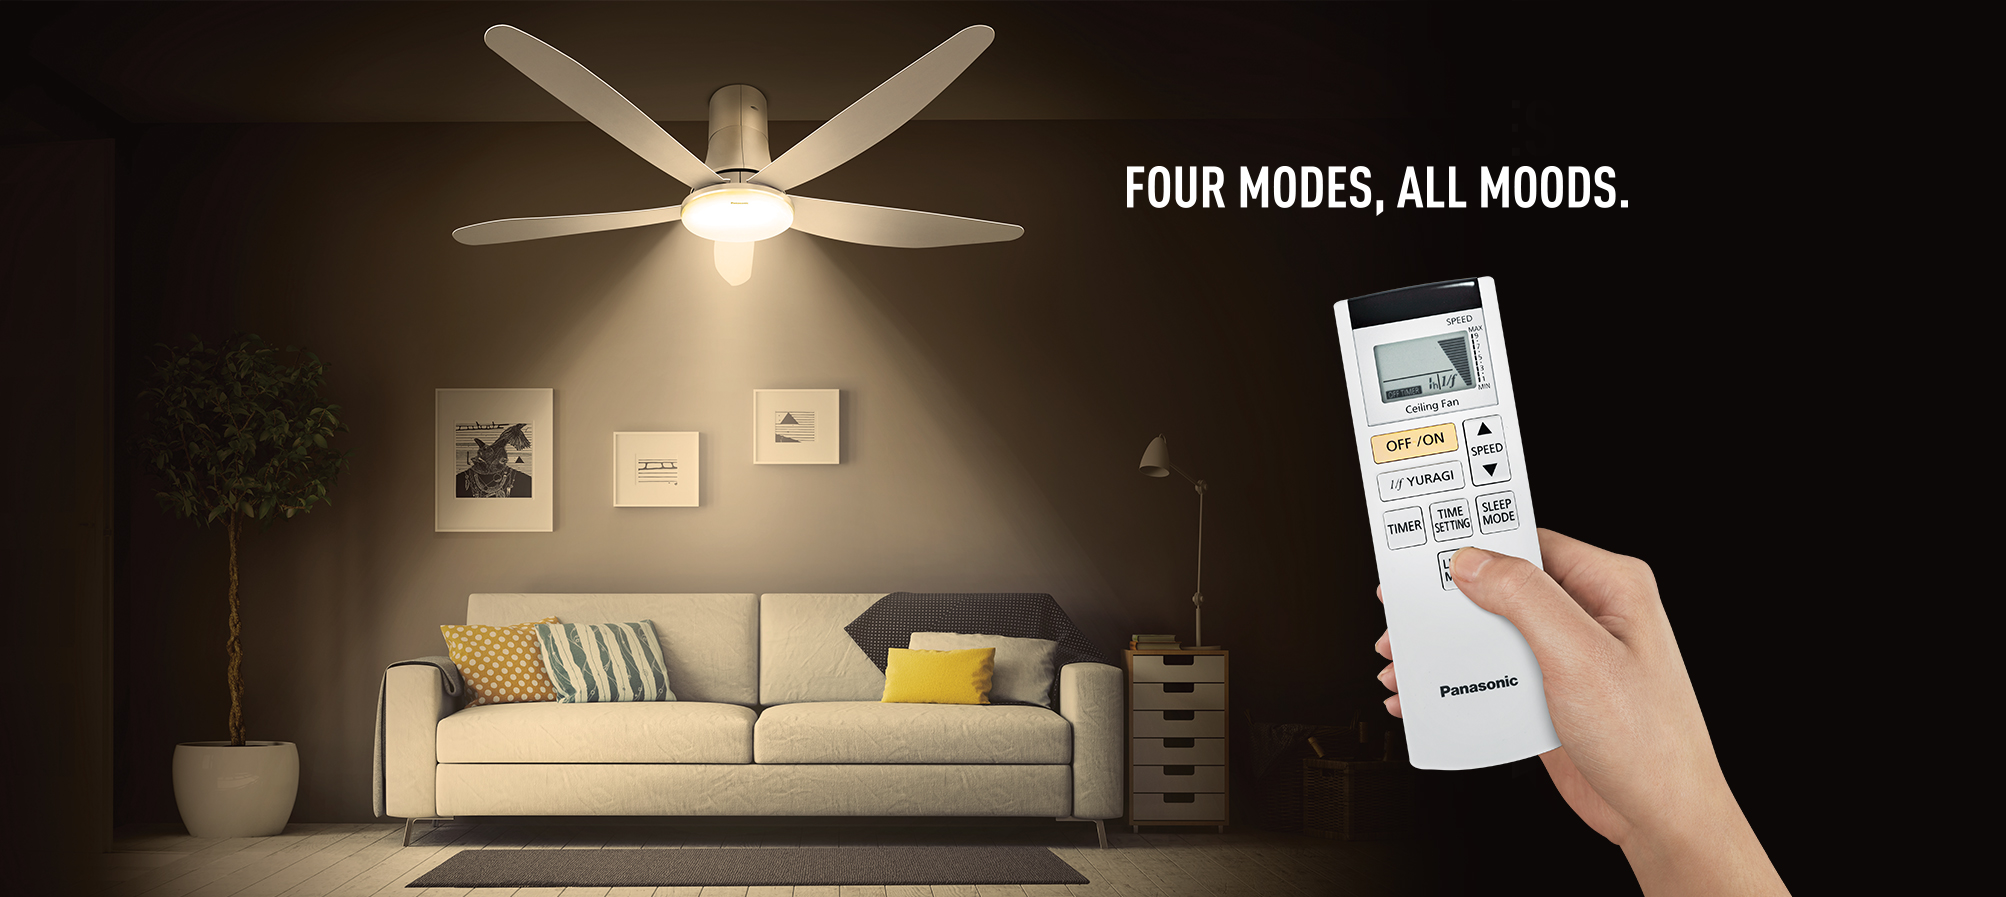 Panasonic Ceiling Fans combine beautiful contemporary designs with innovative technology, creating strong airflows, which complement the circulation of cool air from air conditioning systems.